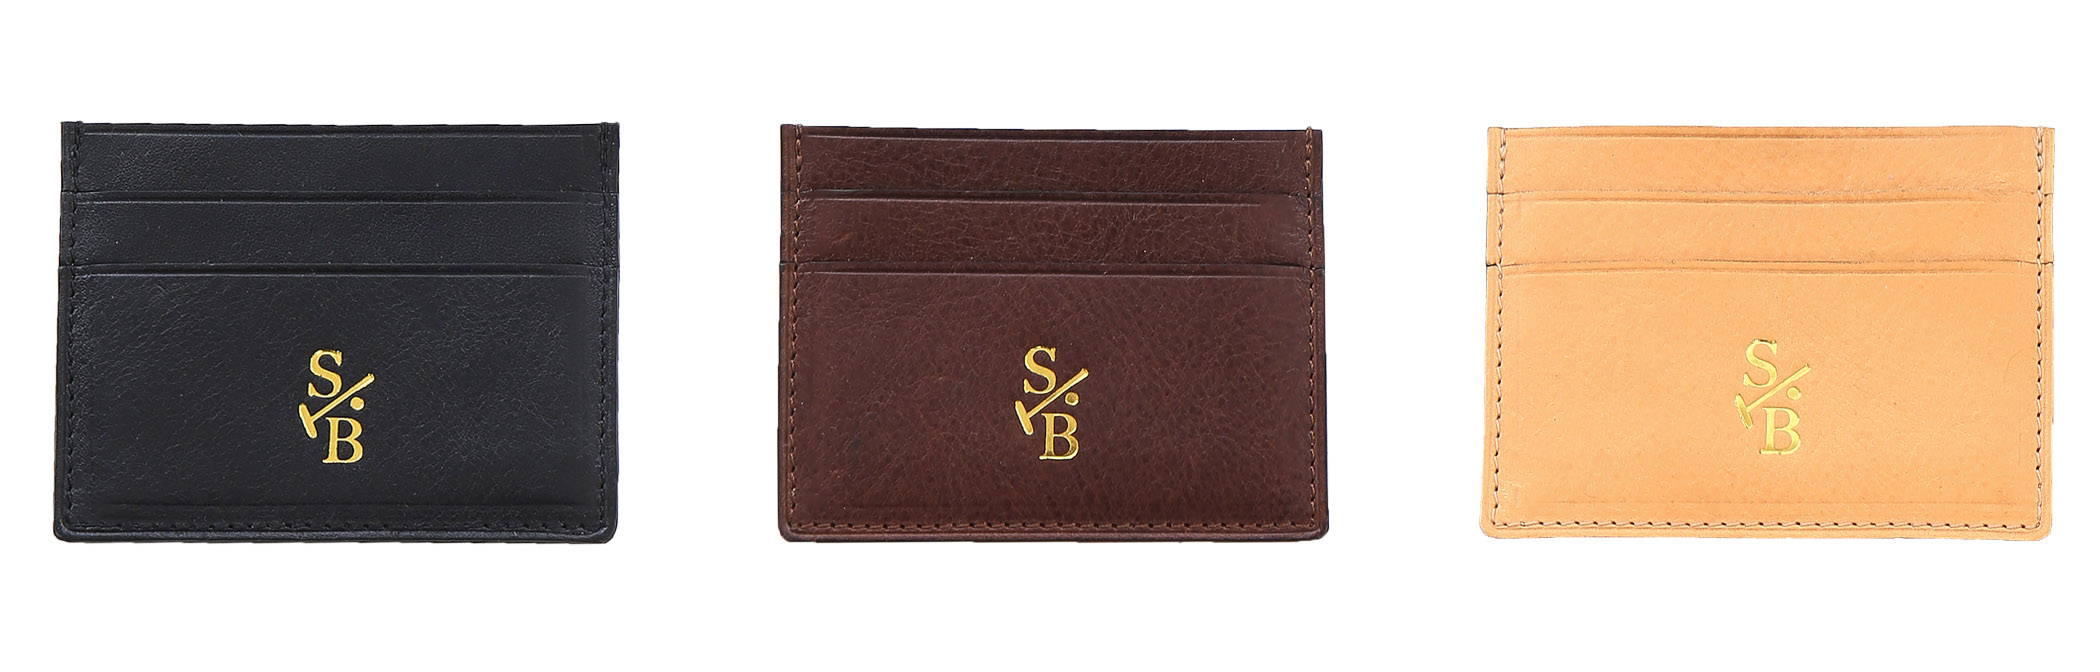 Vegetable-tanned Italian leather double sided flat wallets in black, brown & tan - Stick & Ball